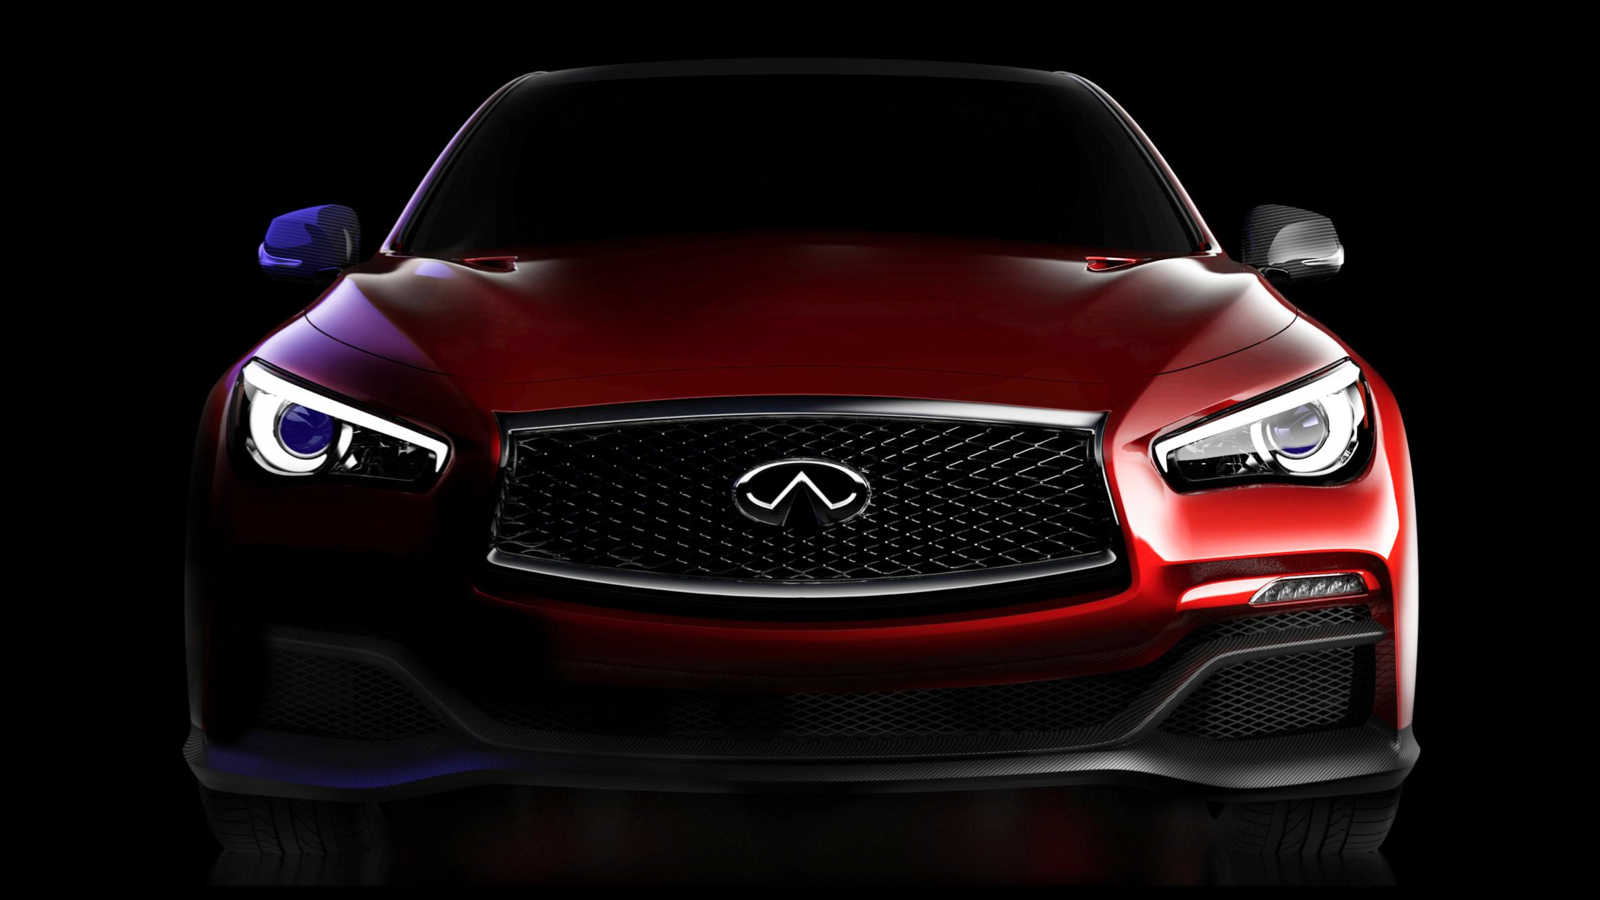 The infiniti q50 eau rouge is an f1 inspired car with an inspired name